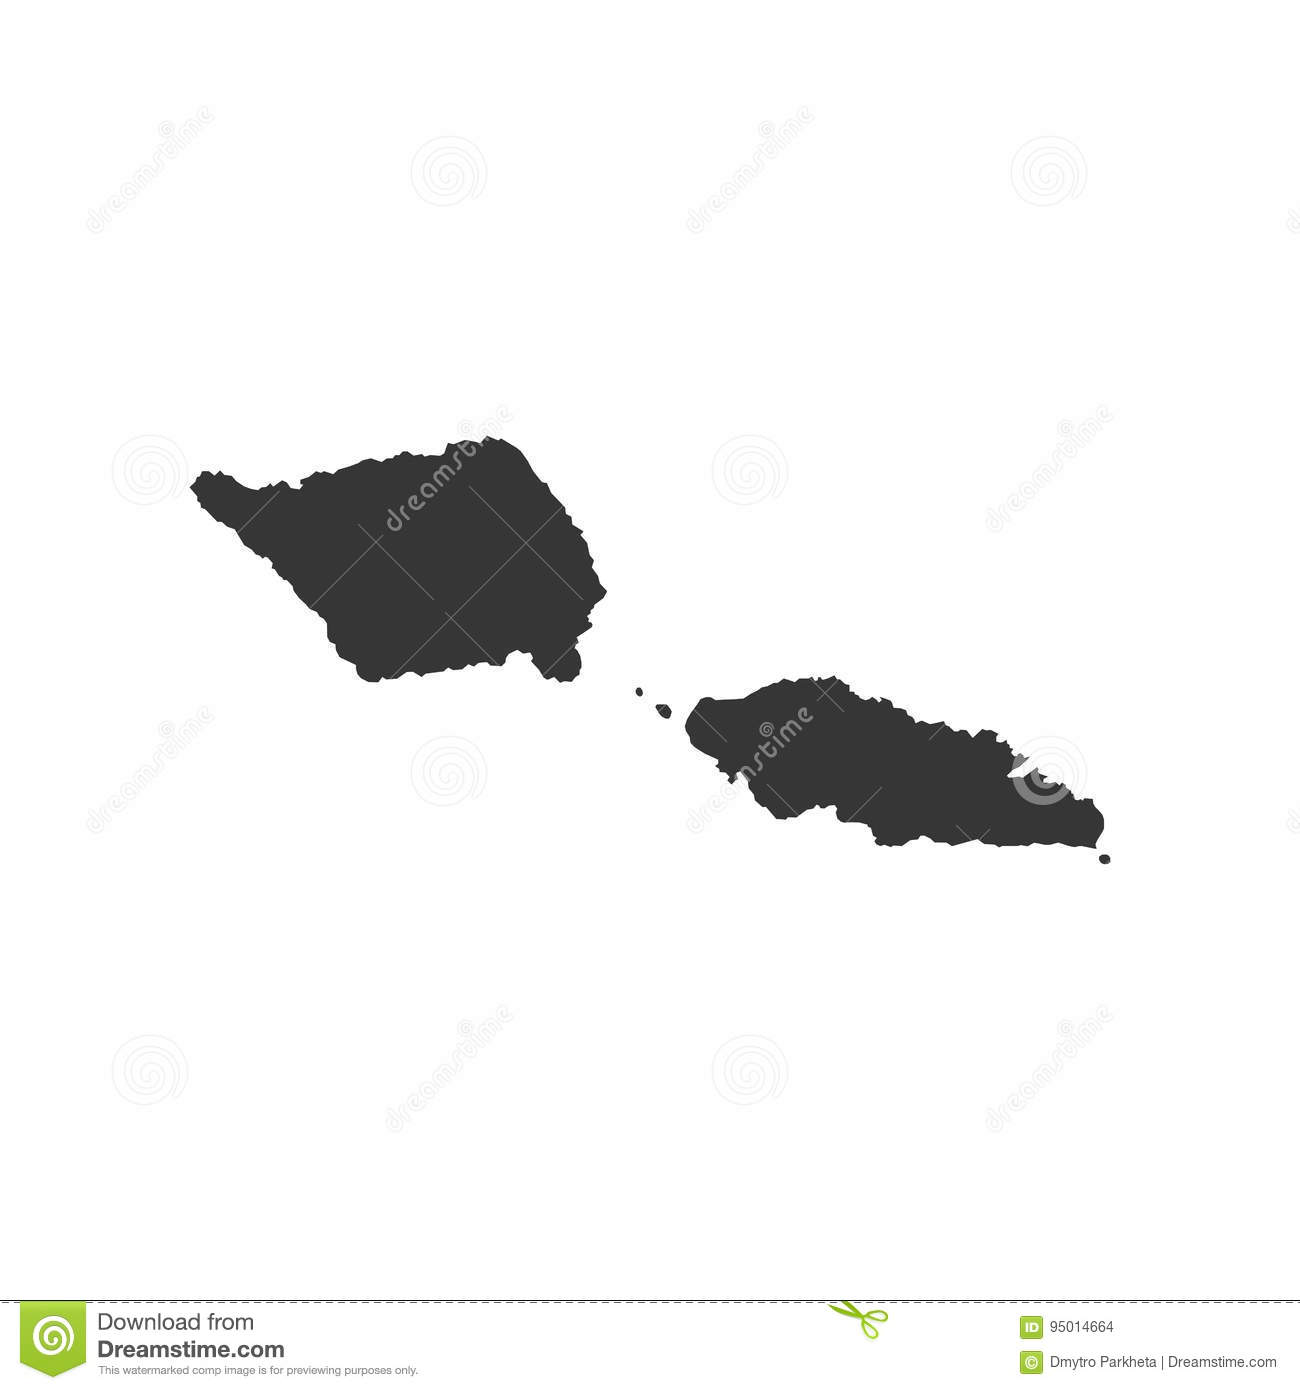 Samoa map outline stock vector  Illustration of black   95014664 Samoa map outline  Black  background